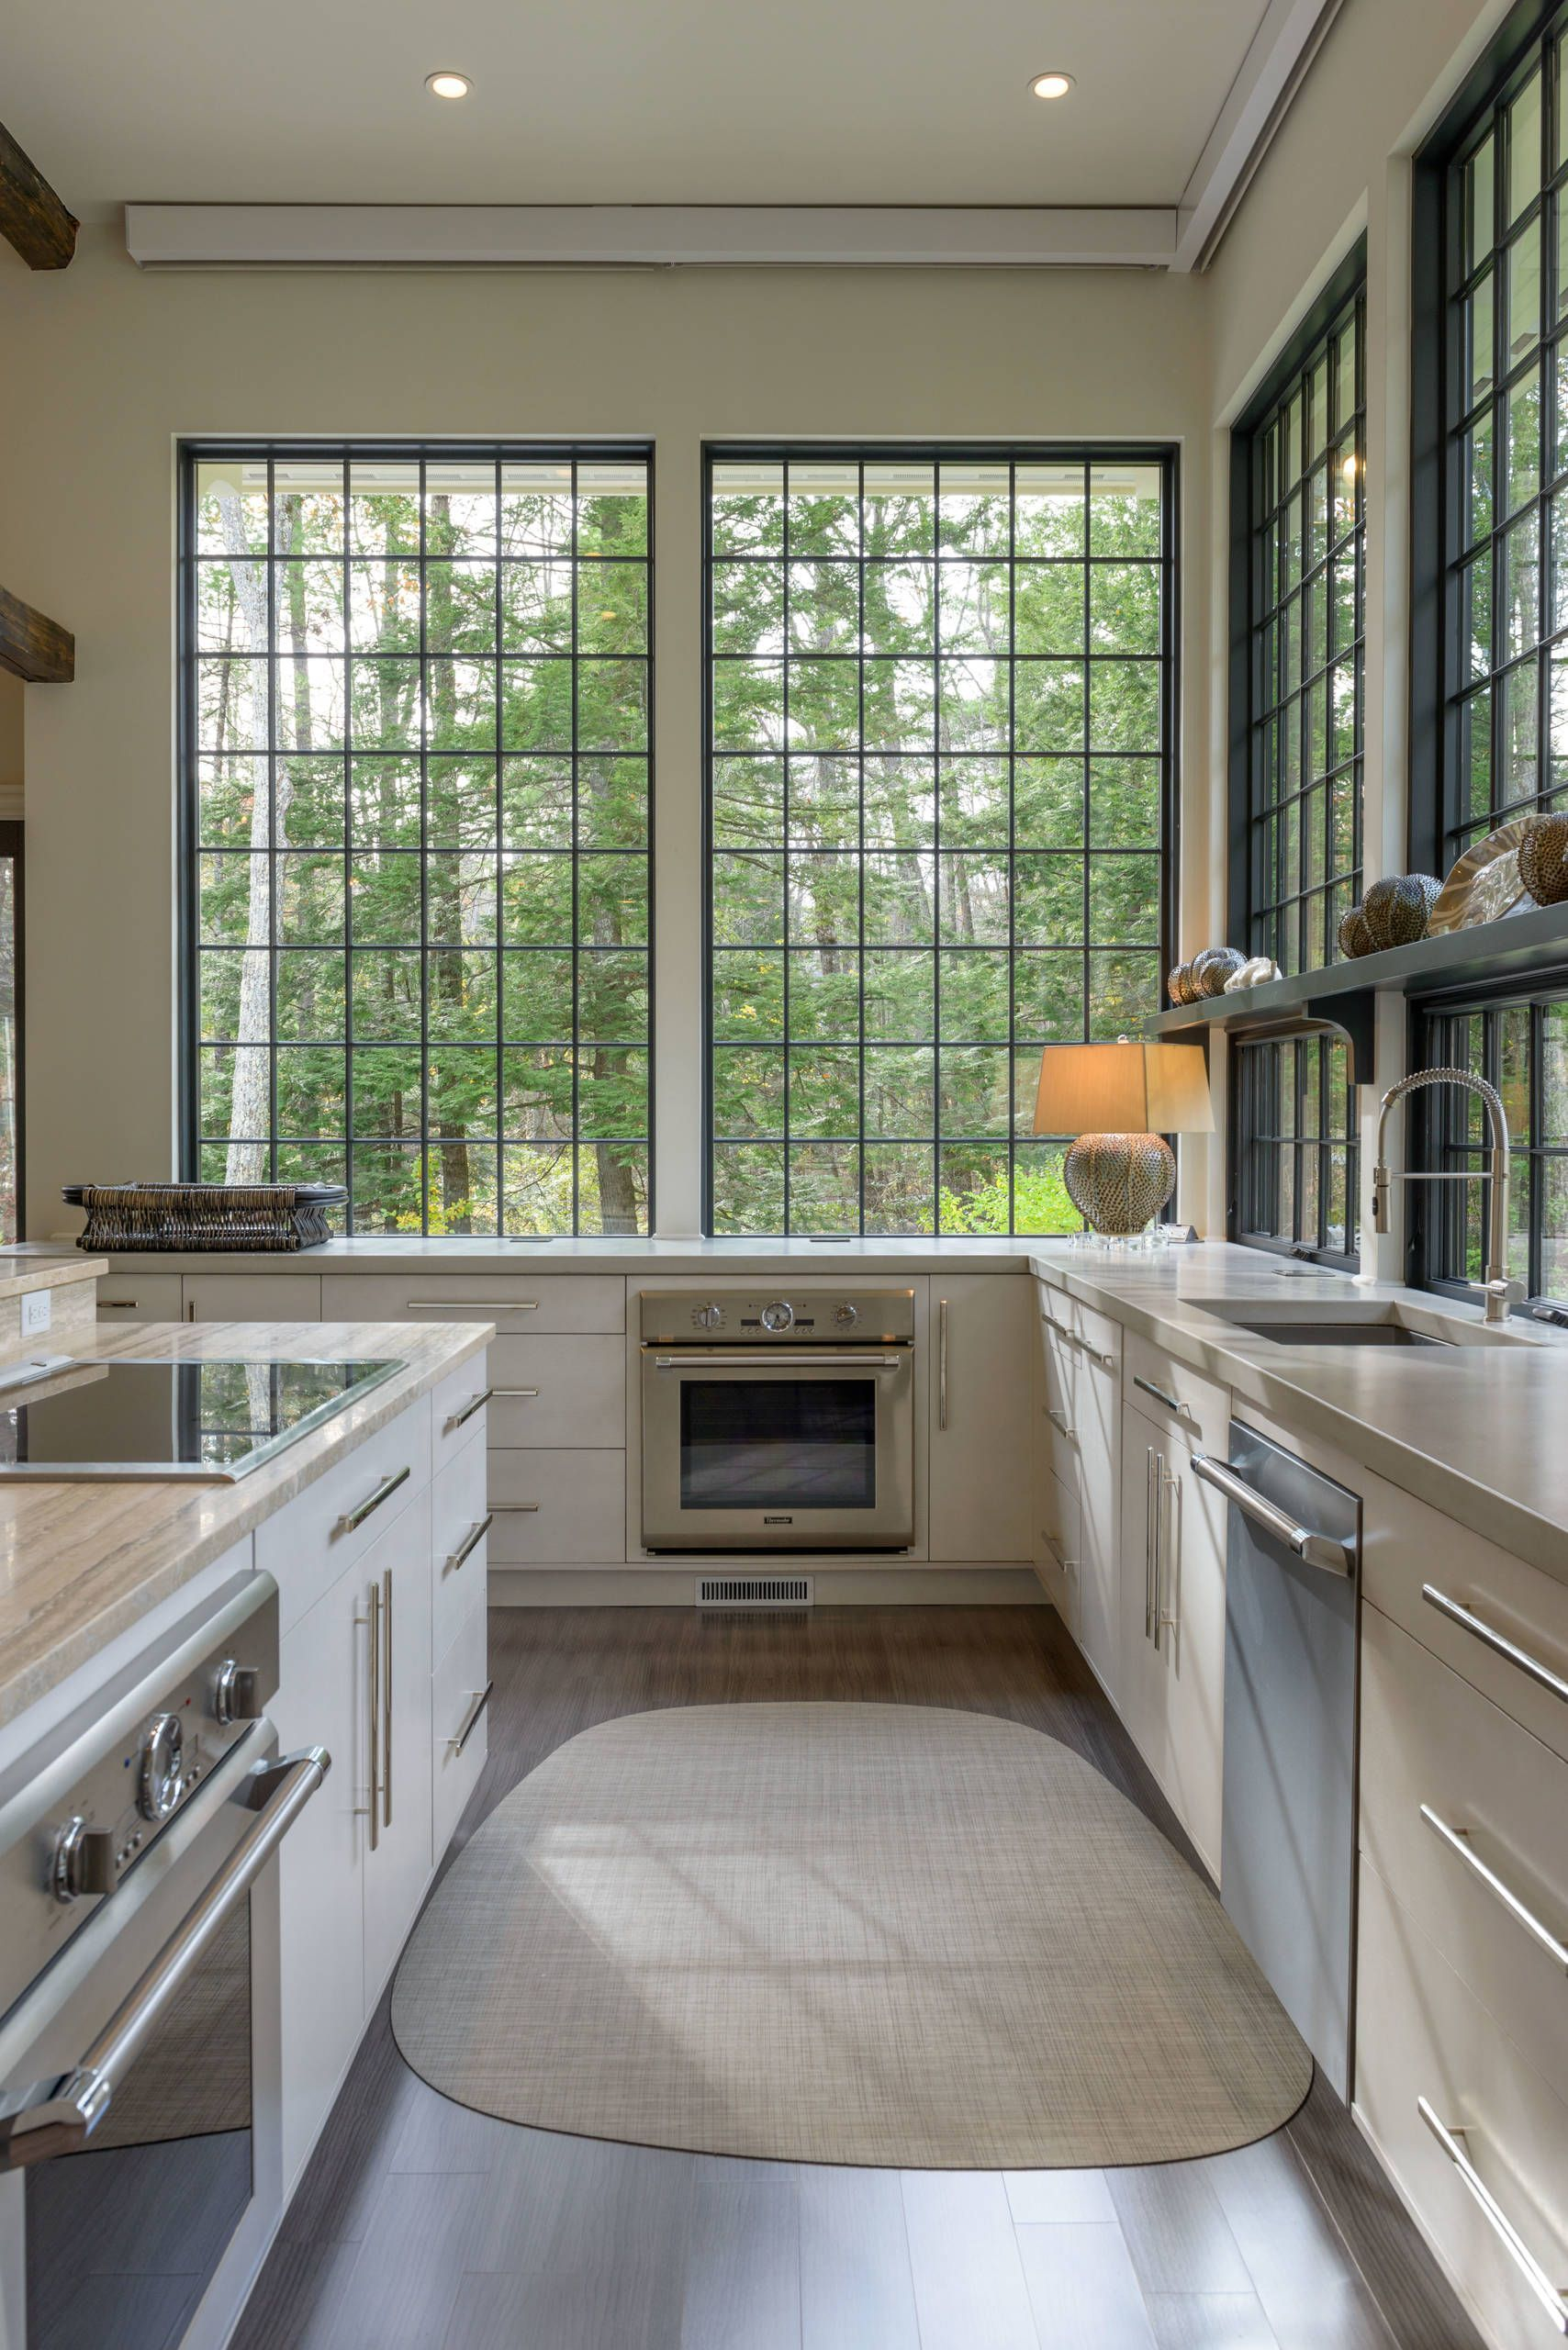 Kitchen window ideas   bay window ideas blending functionality with modern interior